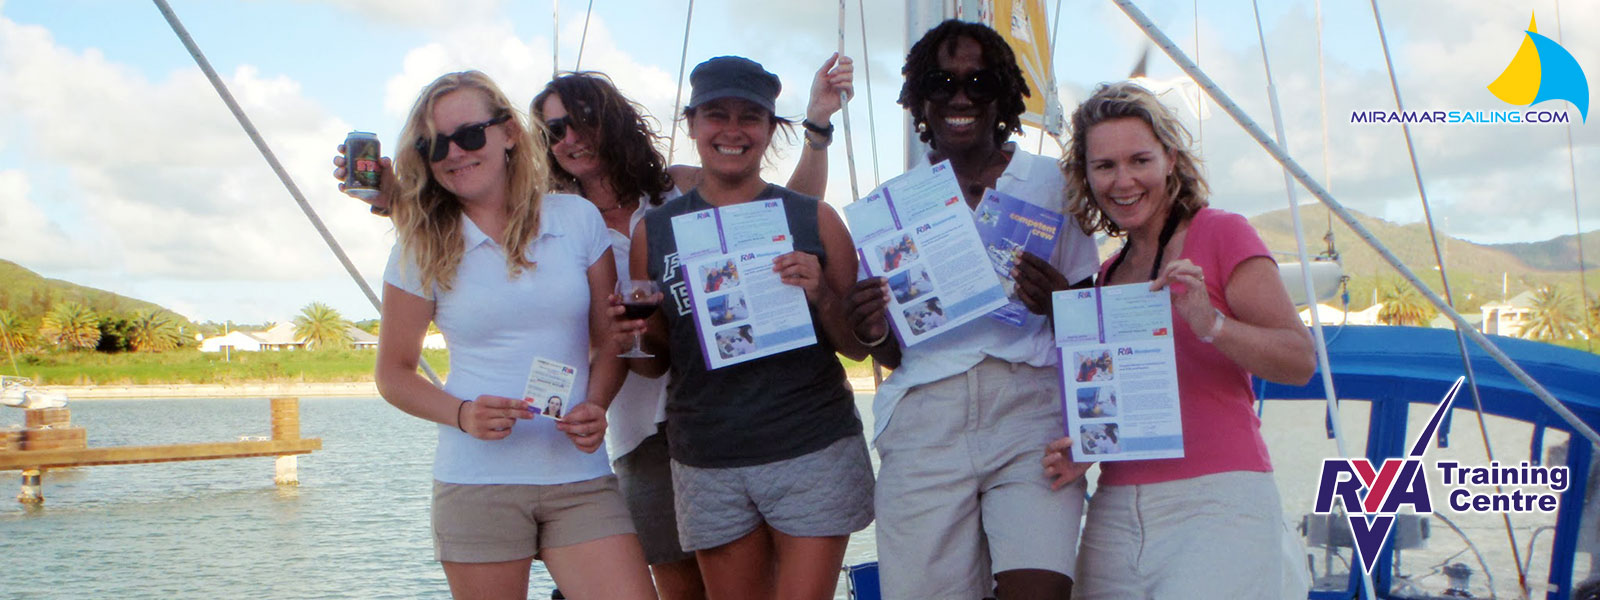 Fantastic News for the Future of Caribbean Skippers